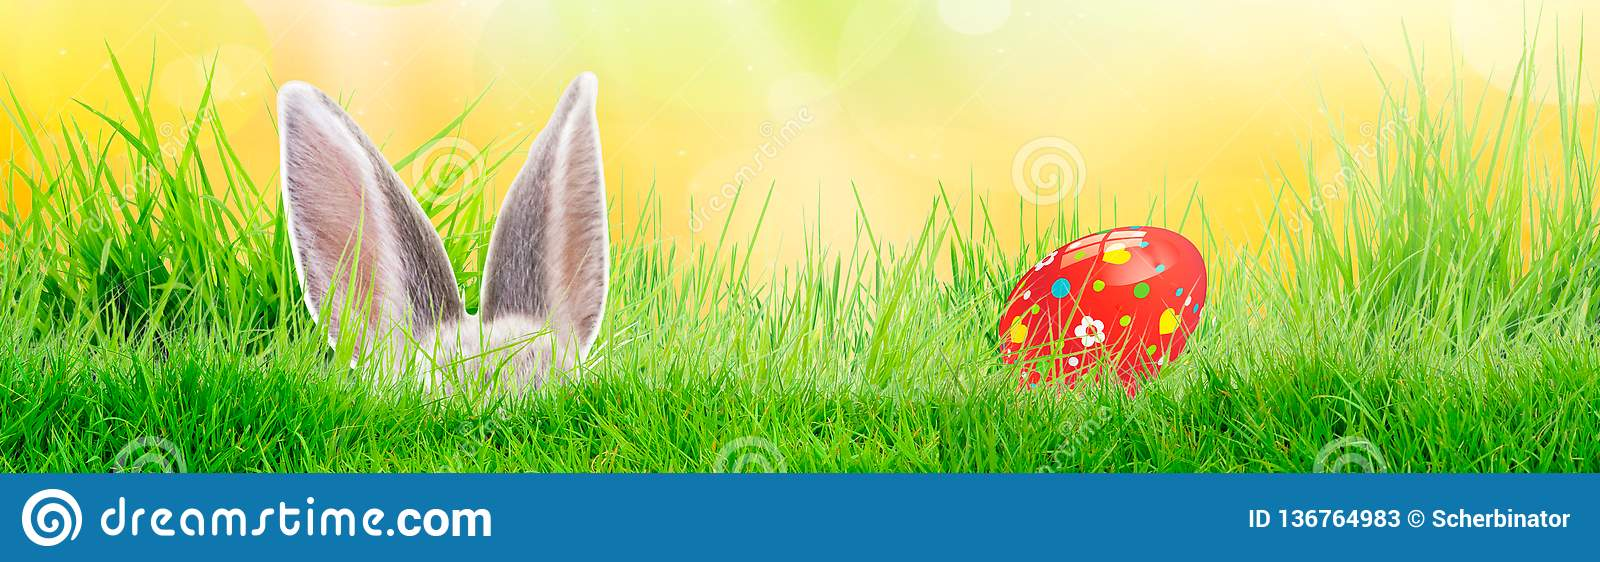 Hand painted Easter egg on grass with bunny. Panorama, banner. Floral, colorful spring patterns and designs. Traditional, artistic